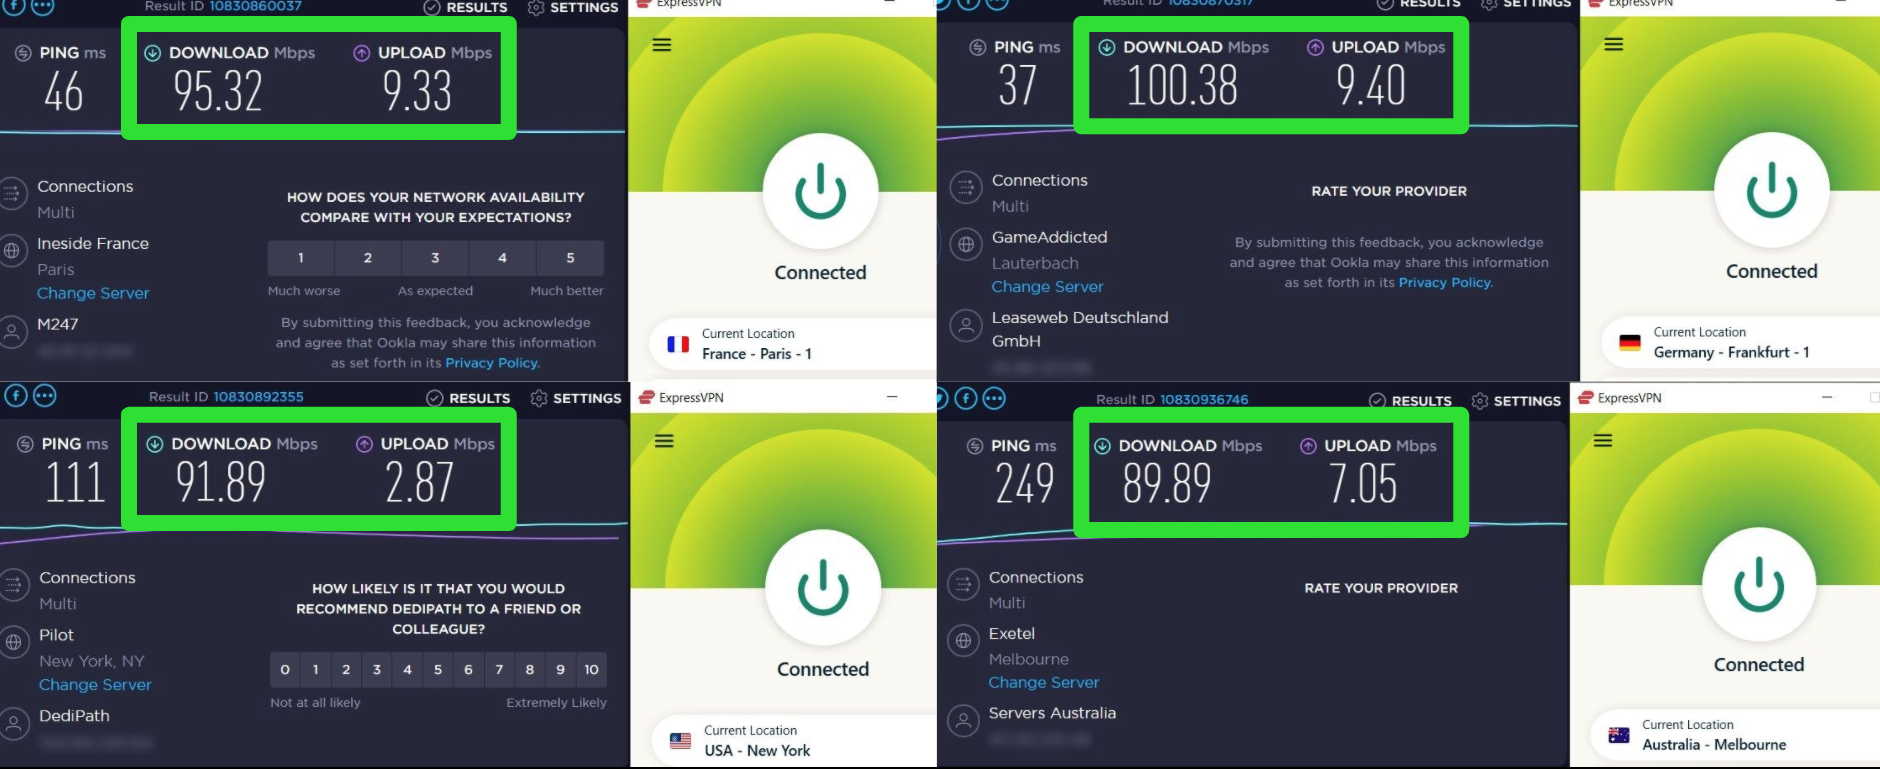 Screenshots of ExpressVPN's speed test results when connected to different servers globally